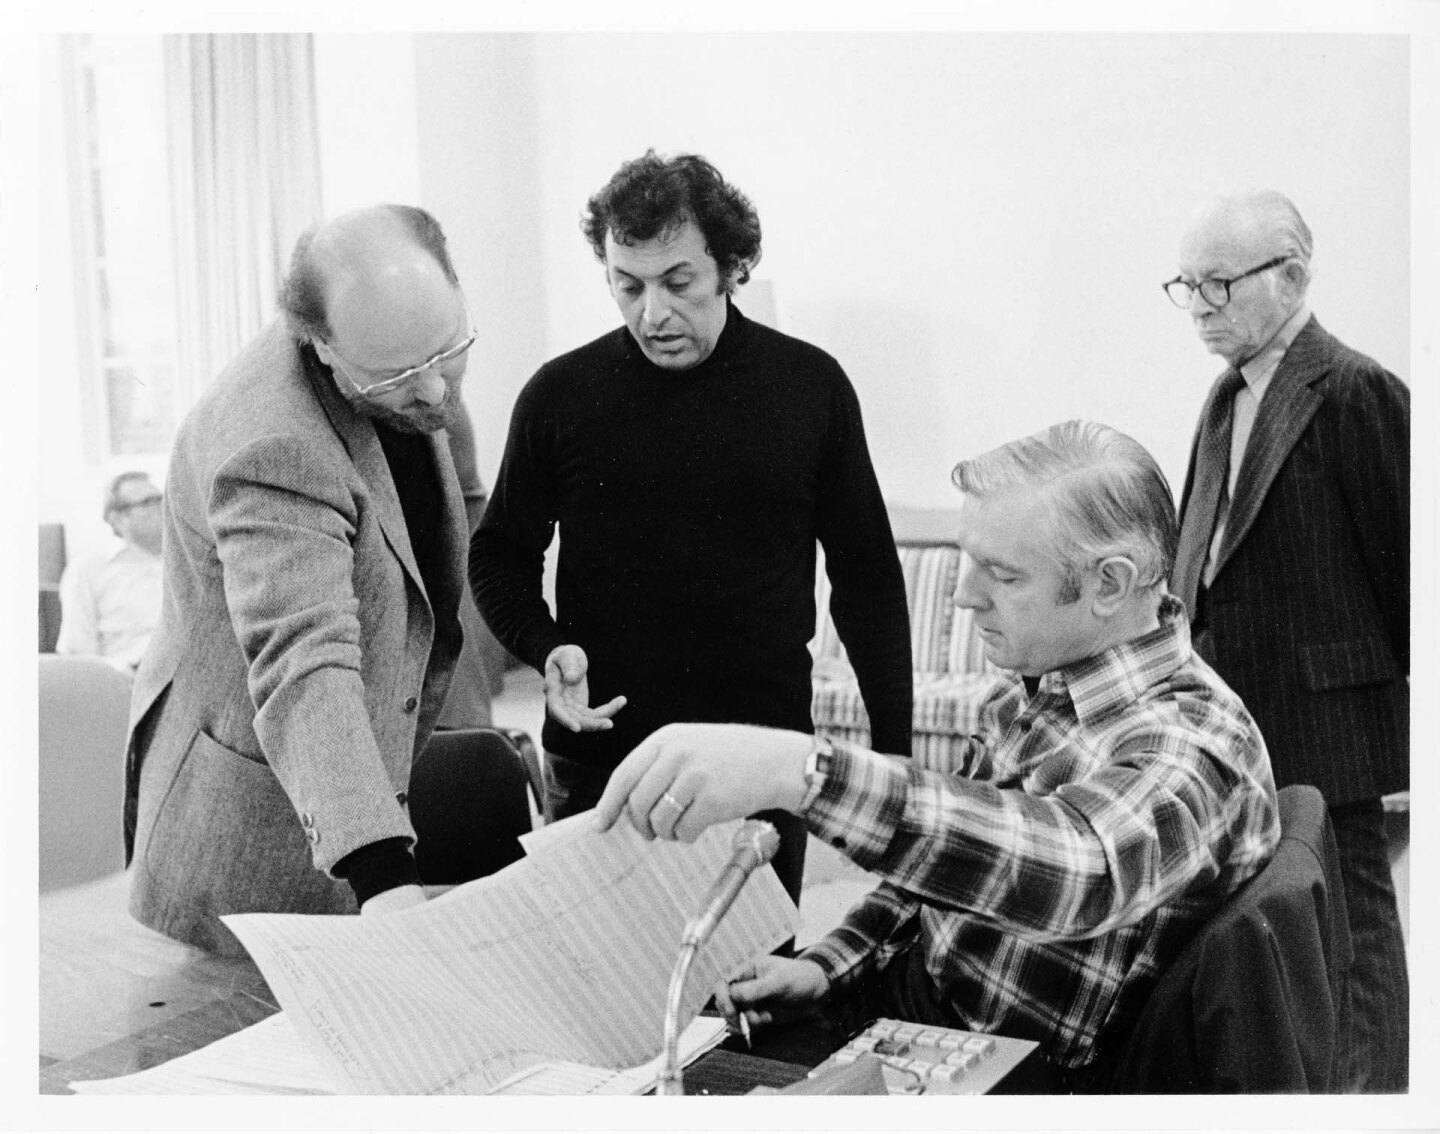 Star Wars recording session at UCLA Royce Hall, in the studio with John Williams and Zubin Mehta, in December 1977.   Courtesy of the Los Angeles Philharmonic Archives